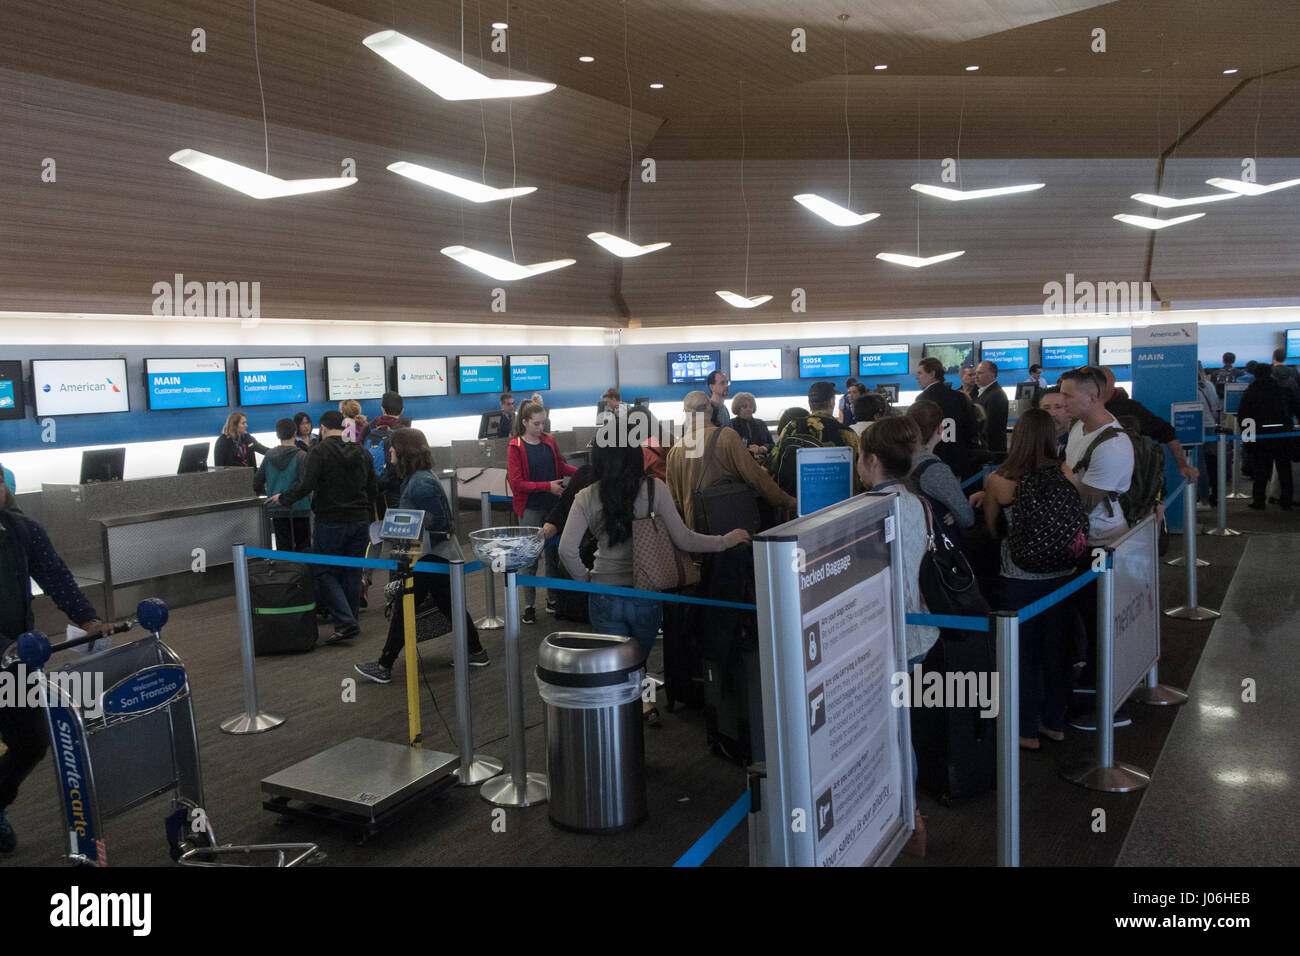 American Airlines Check In Desk Stock Photos Amp American